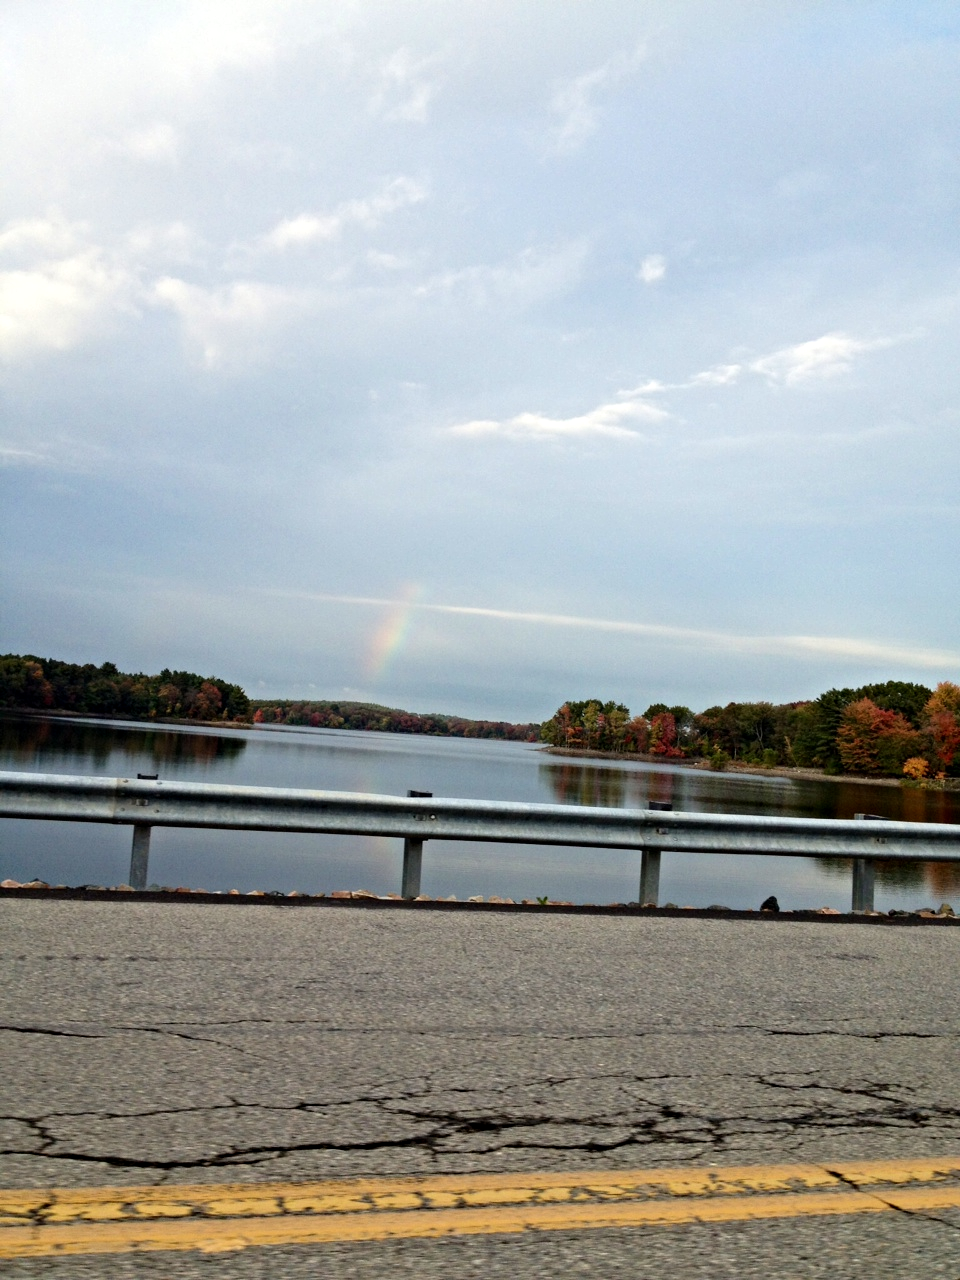 Rainbow over the Reservoir, Waltham, MA